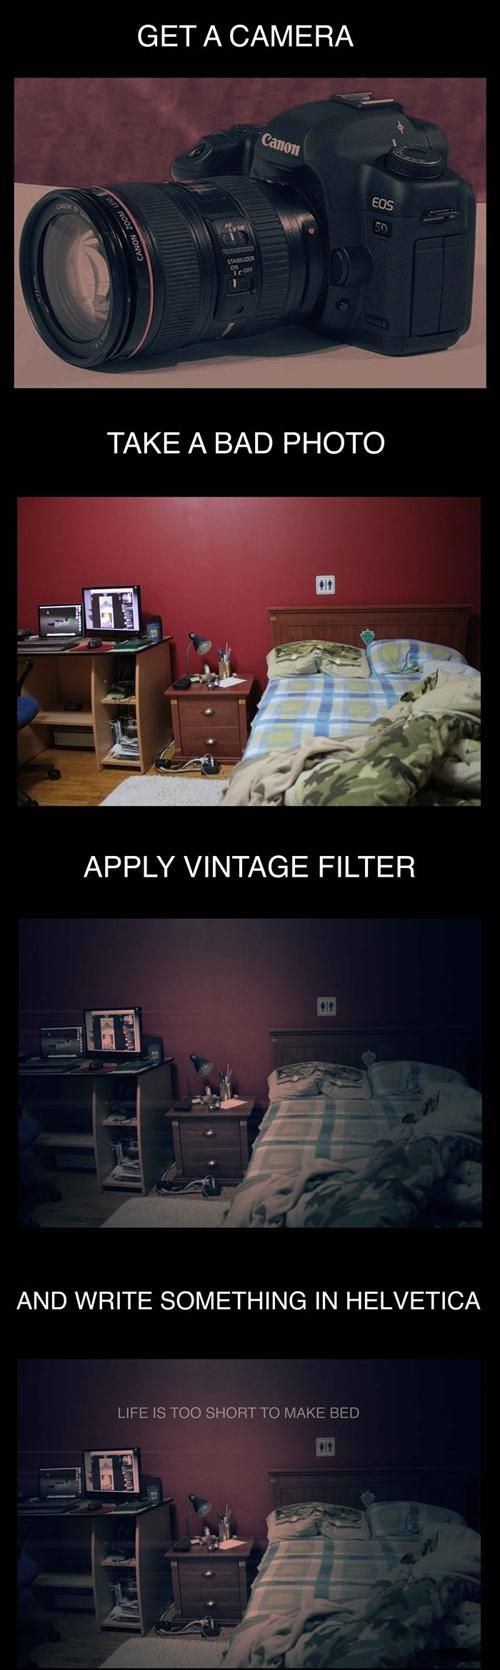 How to take a hipster photo. It's not even funny how true this is.